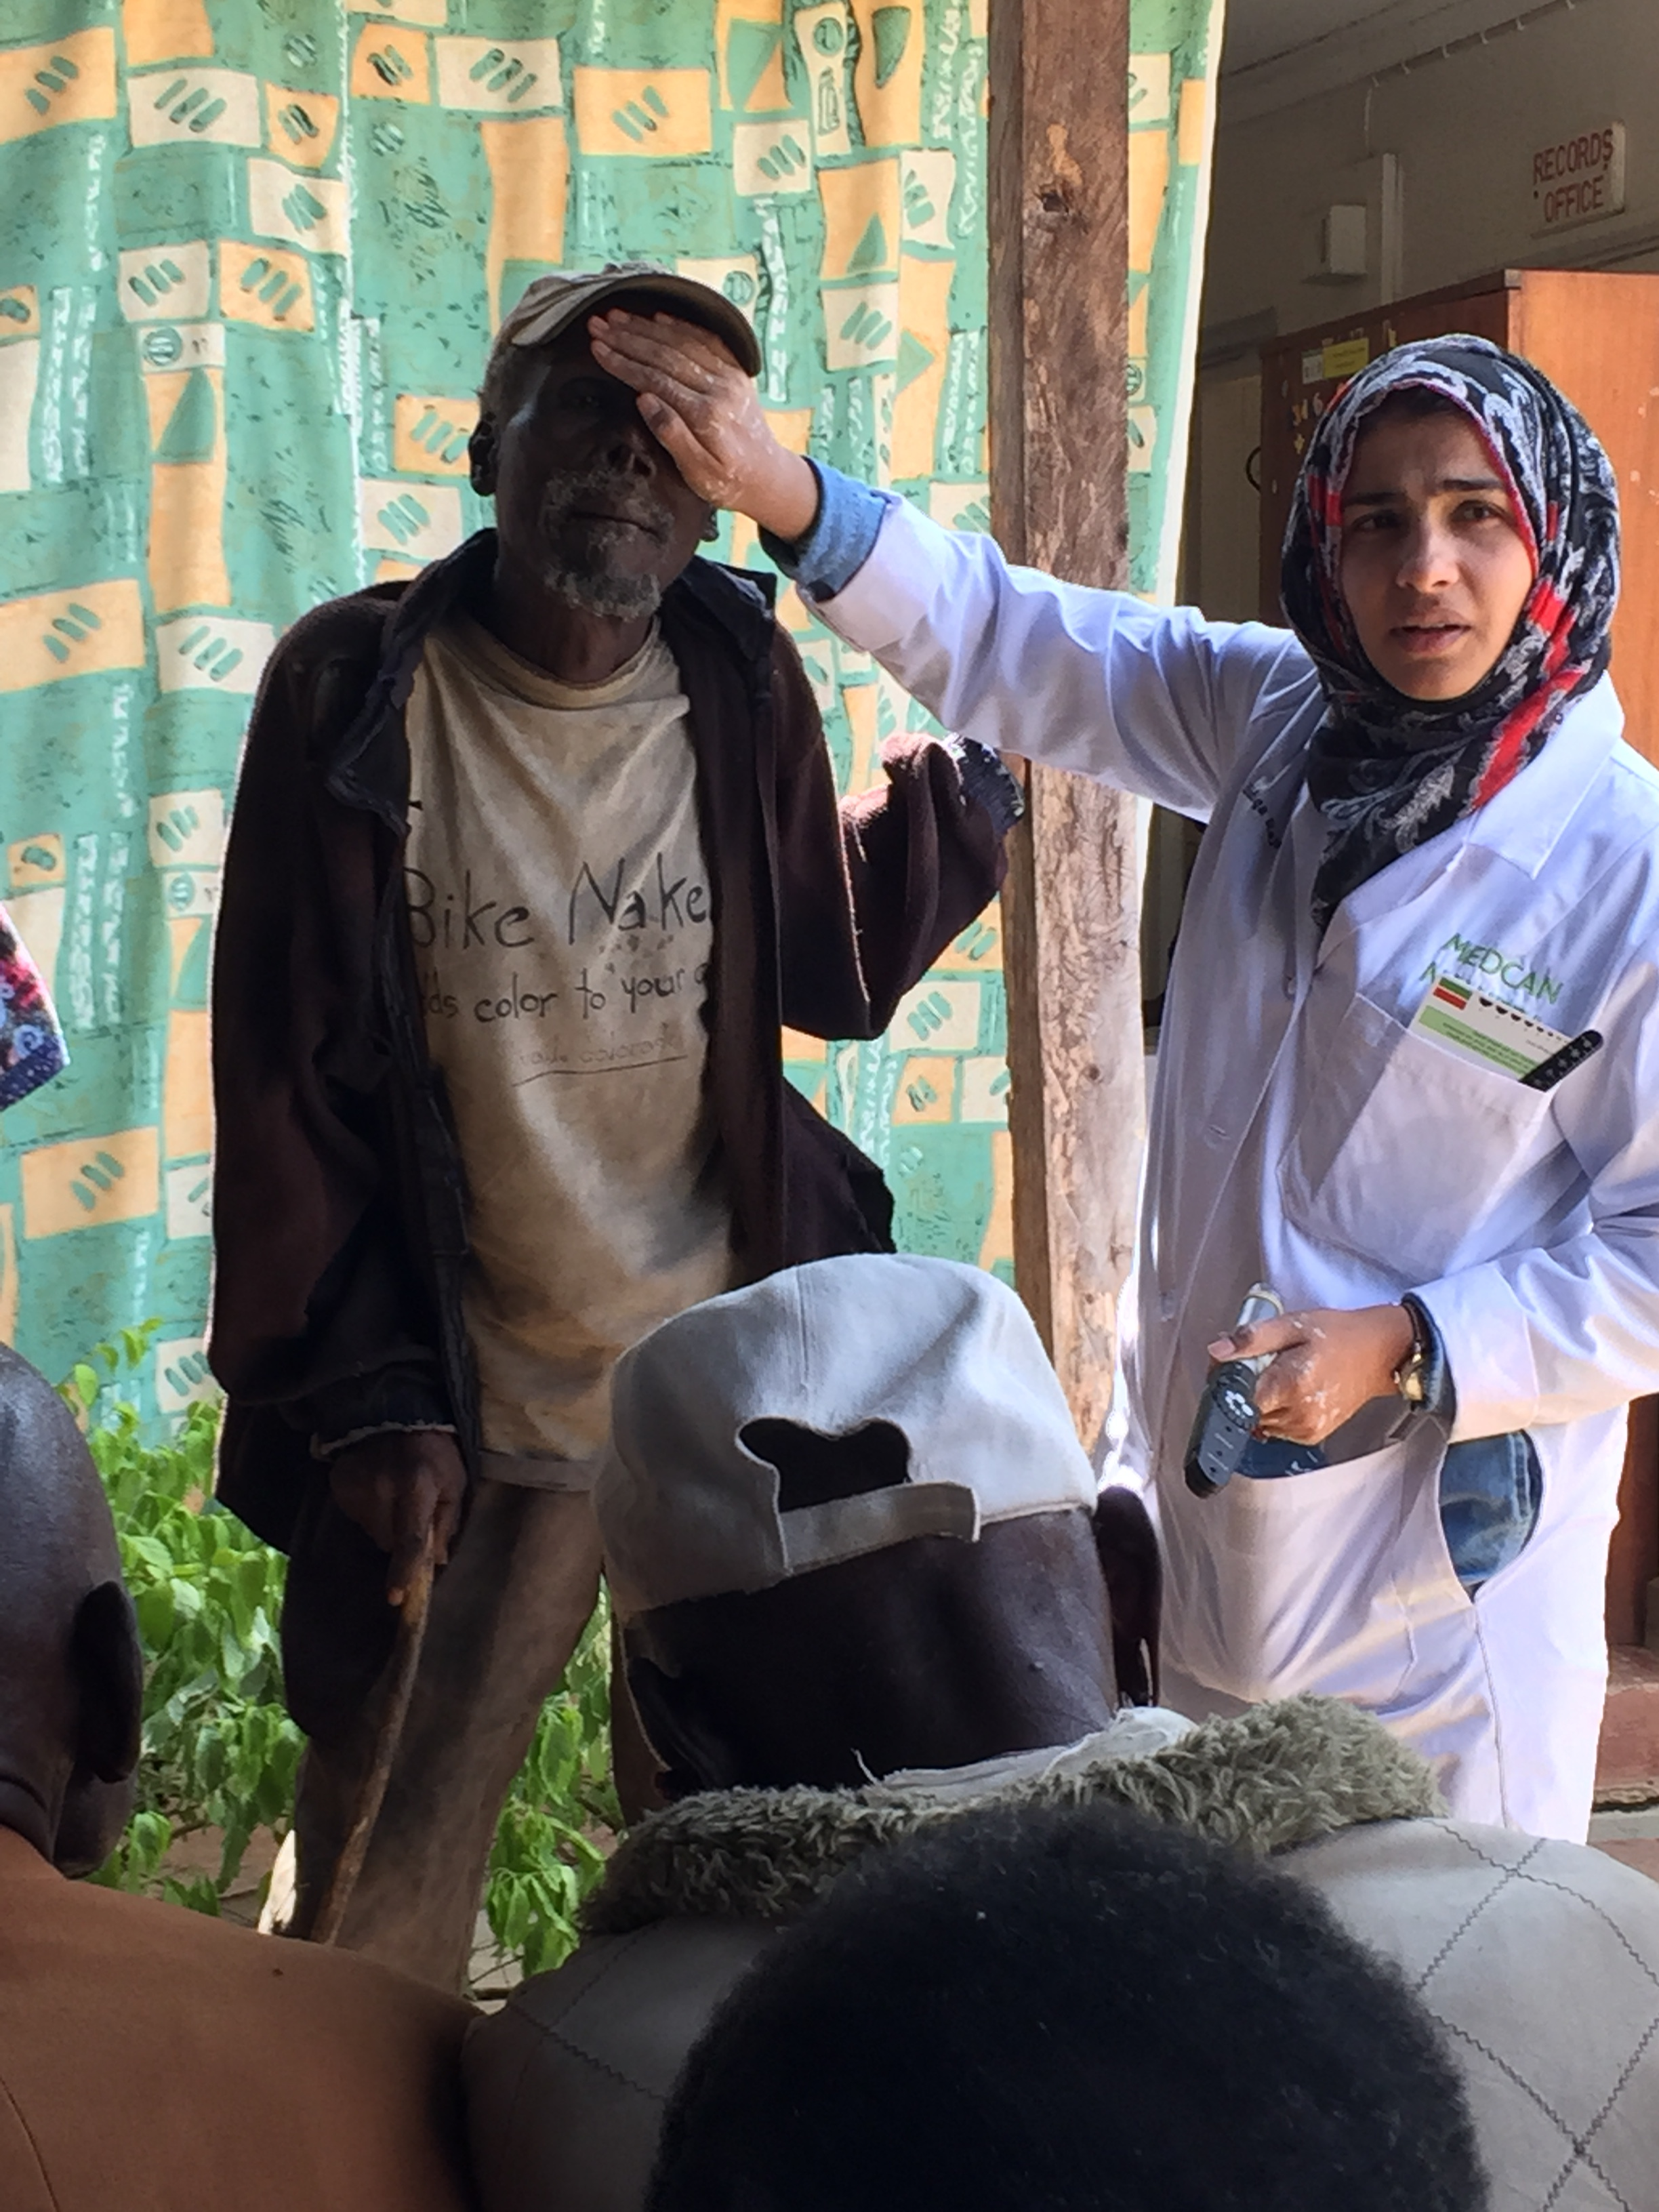 Dr. Sidiqa conducting a post-op vision check on a patient. This man has done quite well with much improved eye sight.